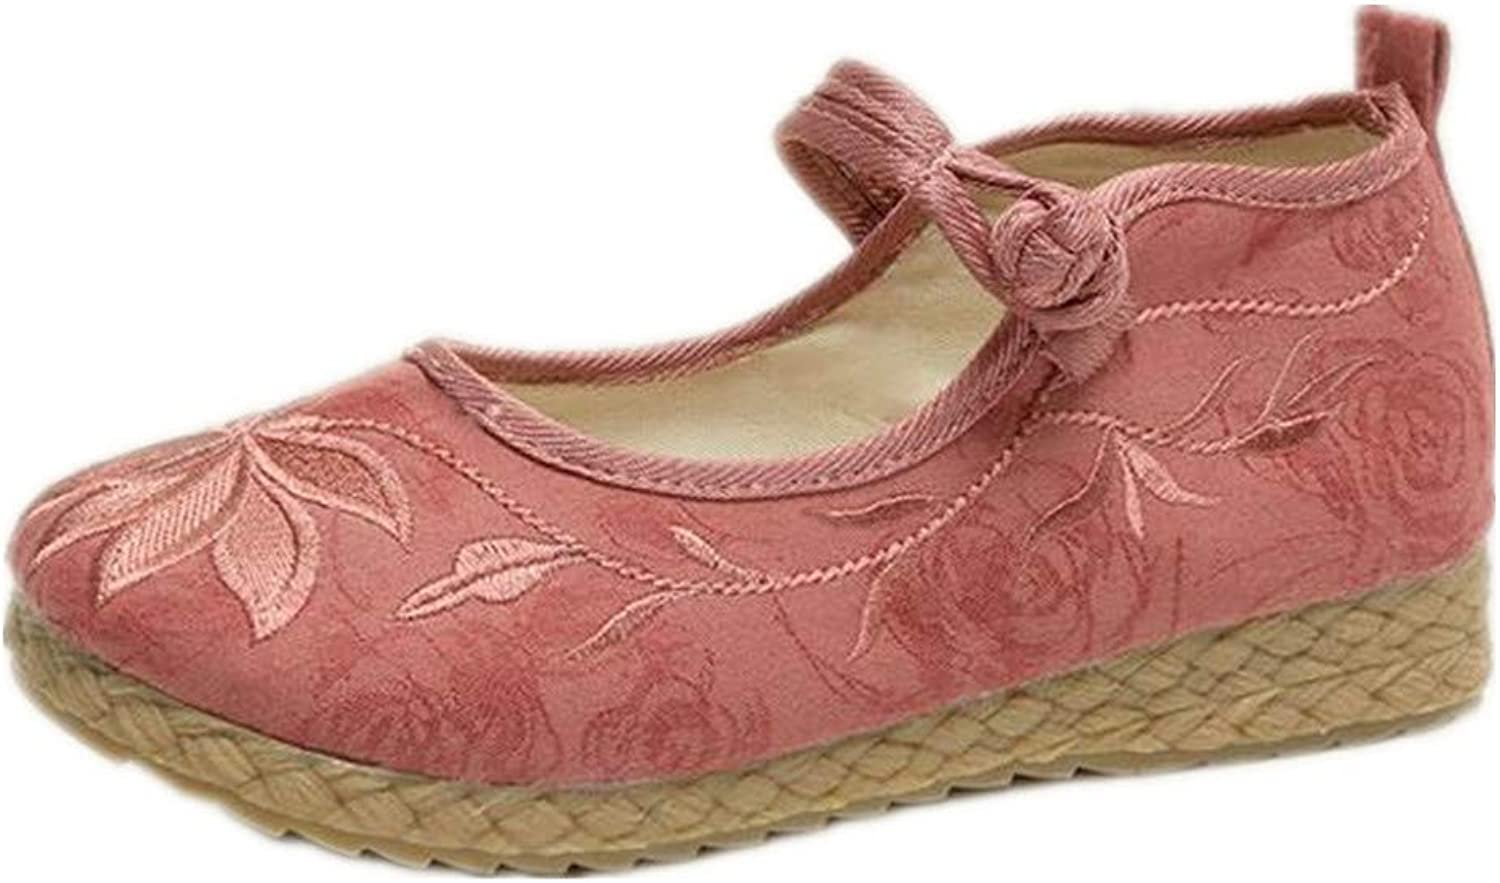 F1rst Rate Women's Embroidery Casual Mary Jane shoes Retro Flats shoes